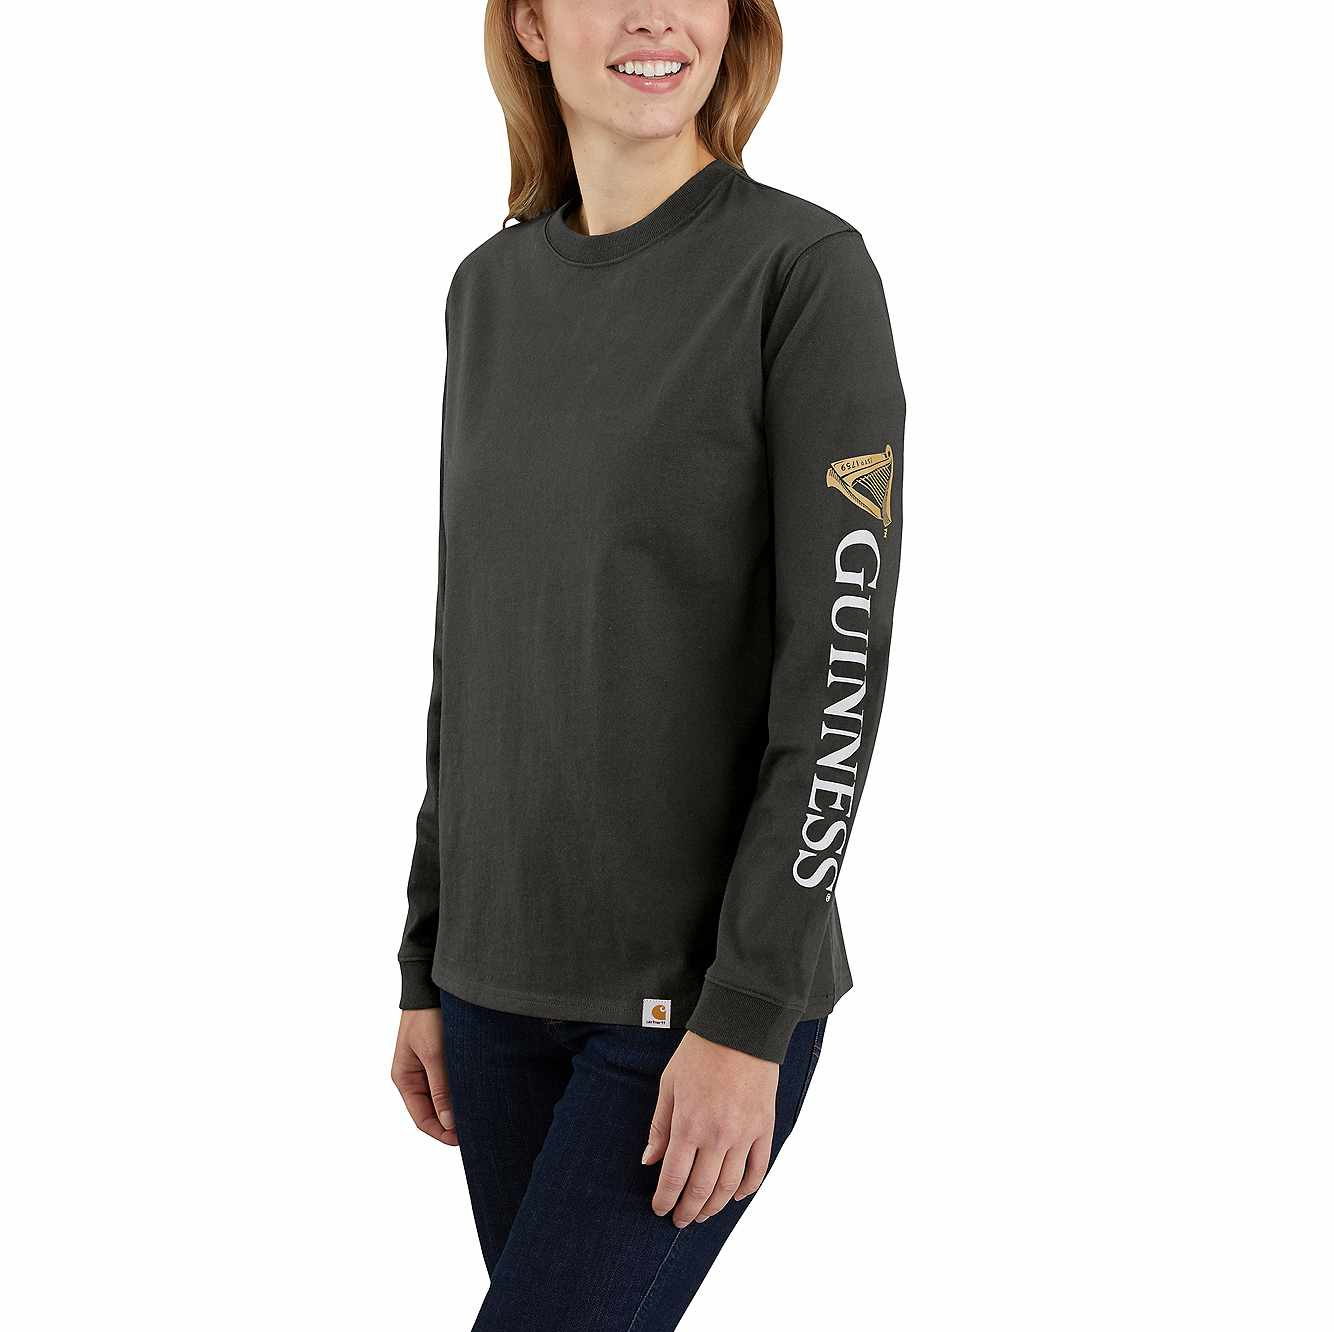 Picture of Women's Original Fit Heavyweight Guinness Graphic Long-Sleeve T-Shirt in Peat